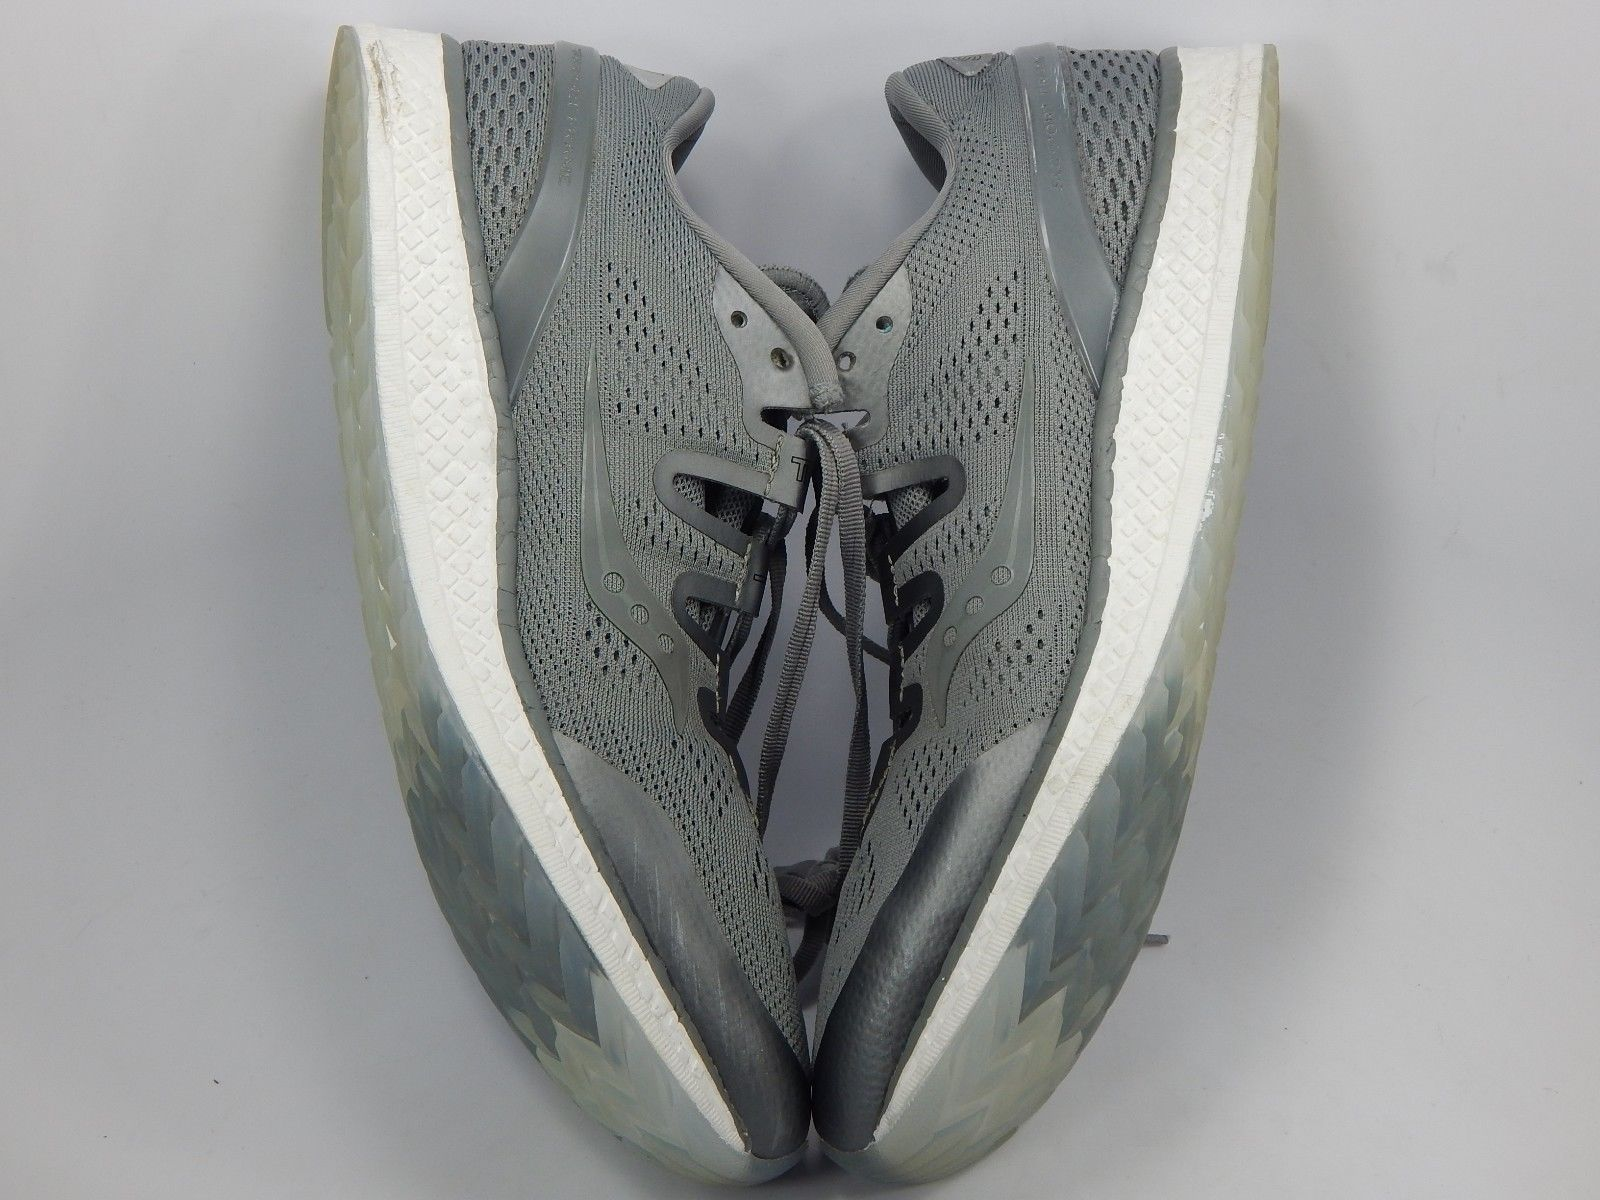 Saucony Freedom ISO Size 10.5 M (D) EU 44.5 Men's Running Shoes Gray S20355-51